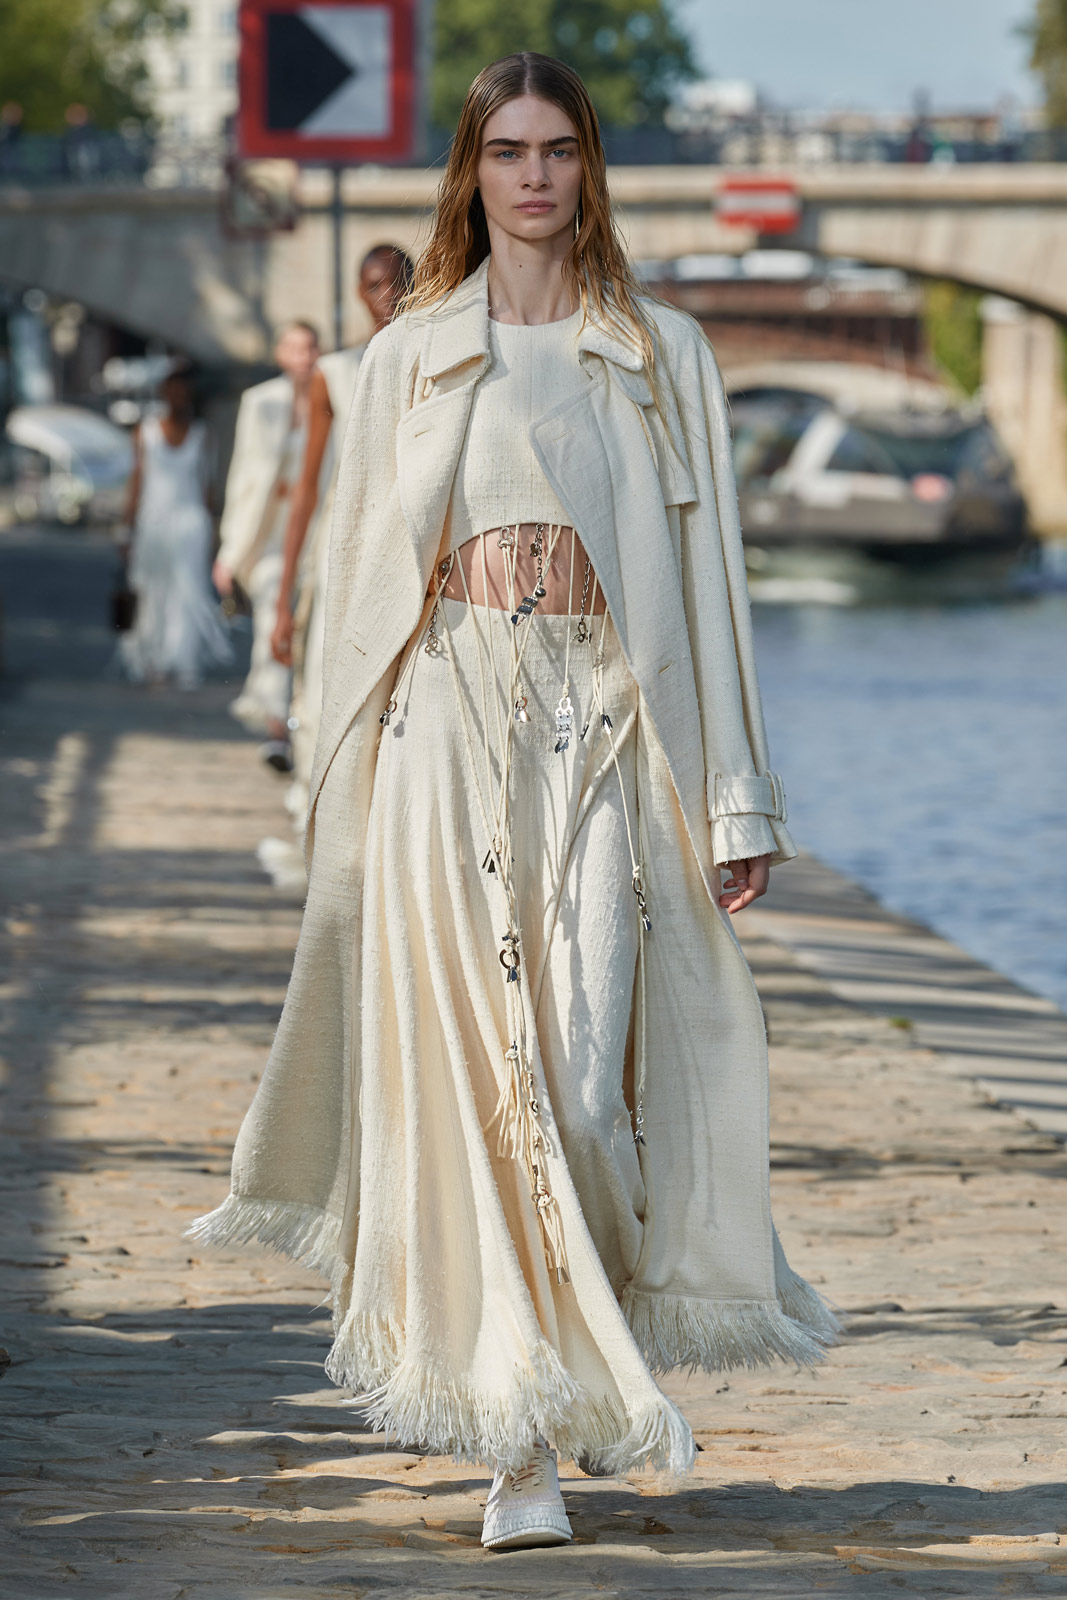 Chloé Spring/Summer 2022 is a collection about love